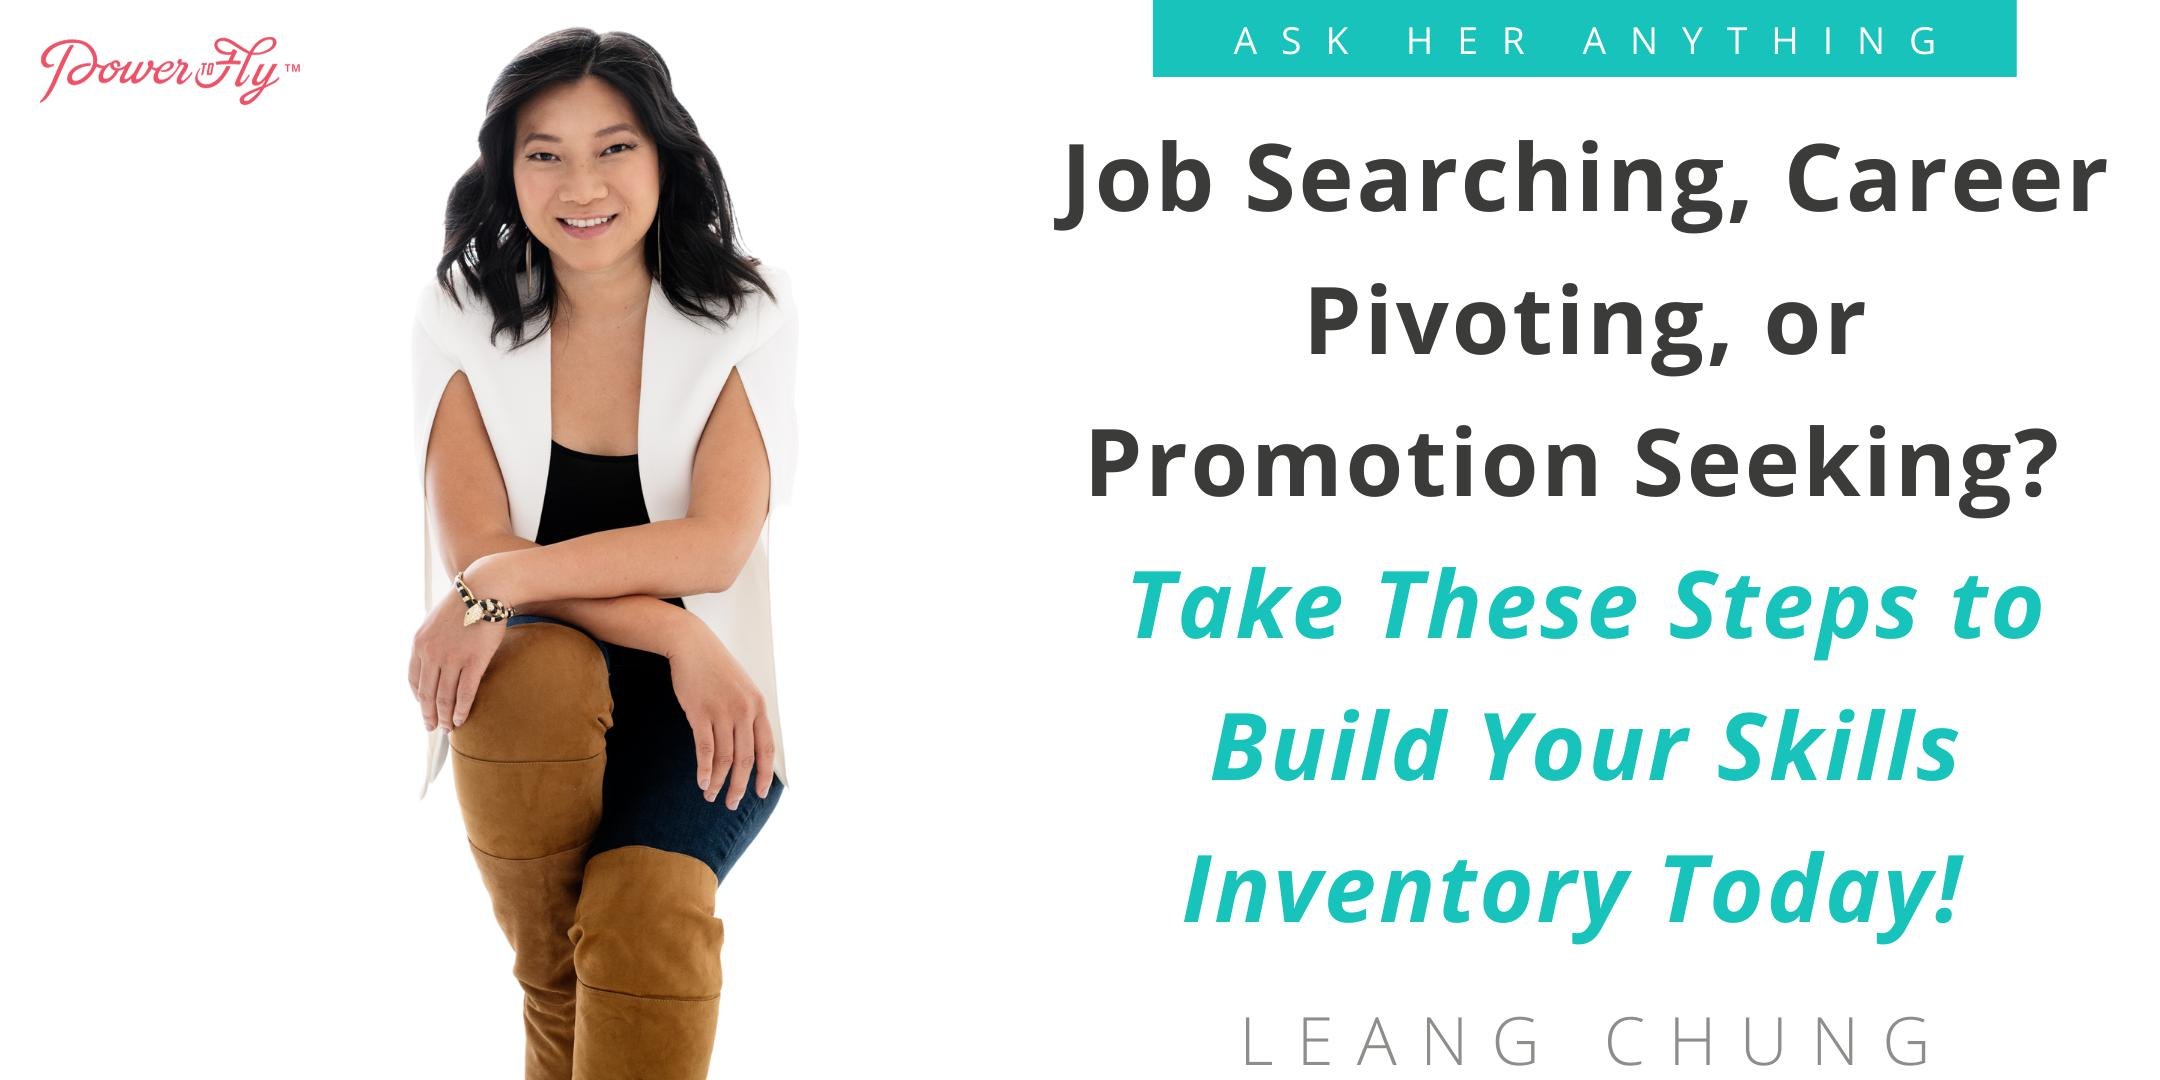 Job Searching, Career Pivoting, or Promotion Seeking?  Take These Steps to Build Your Skills Inventory Today!